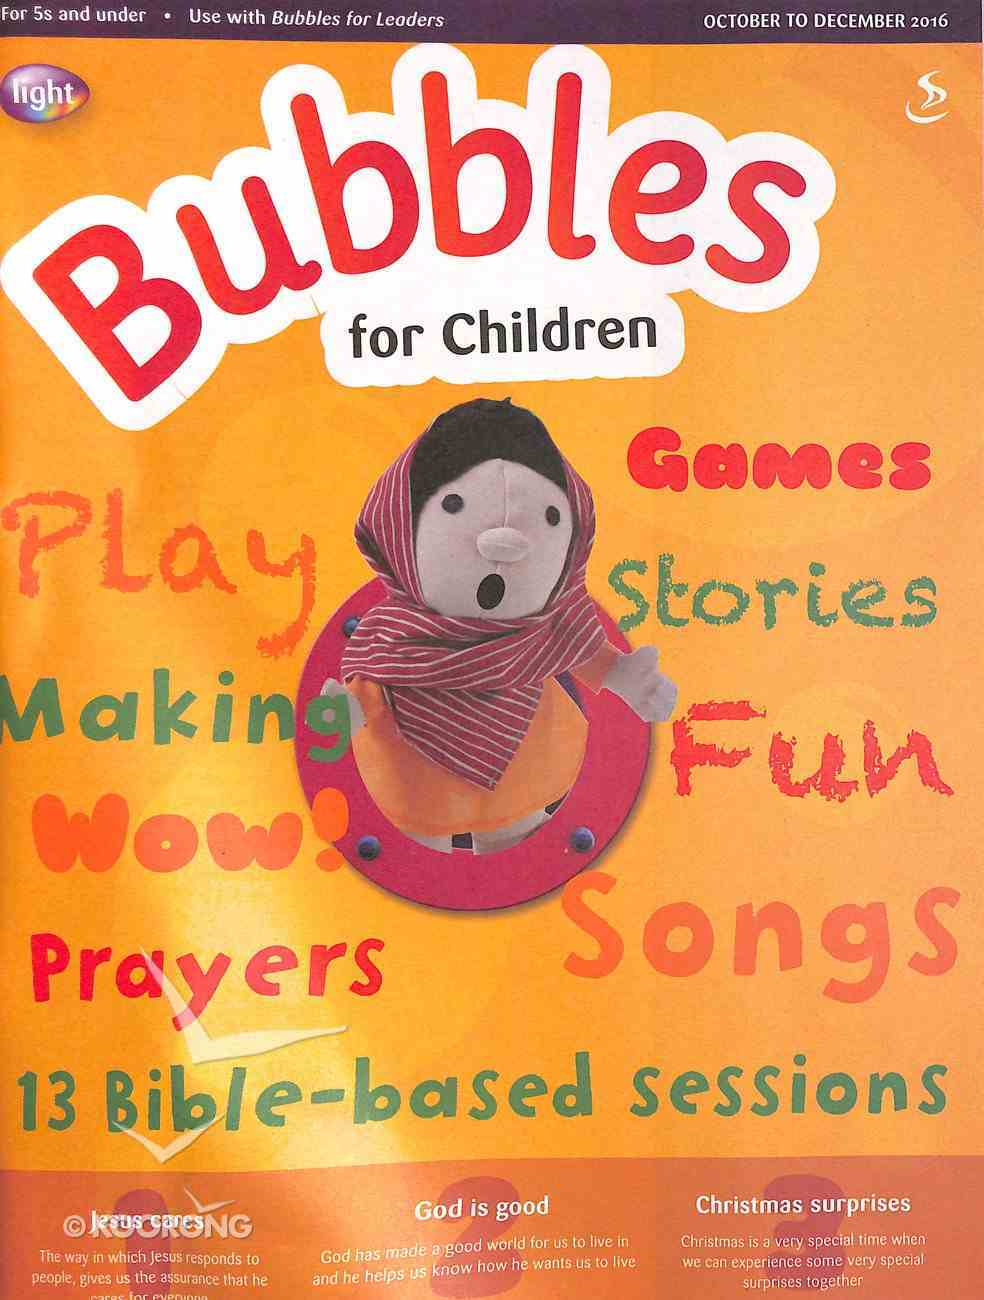 Light: Bubbles 2016 #04: Oct-Dec Student's Guide (5 And Under) Paperback